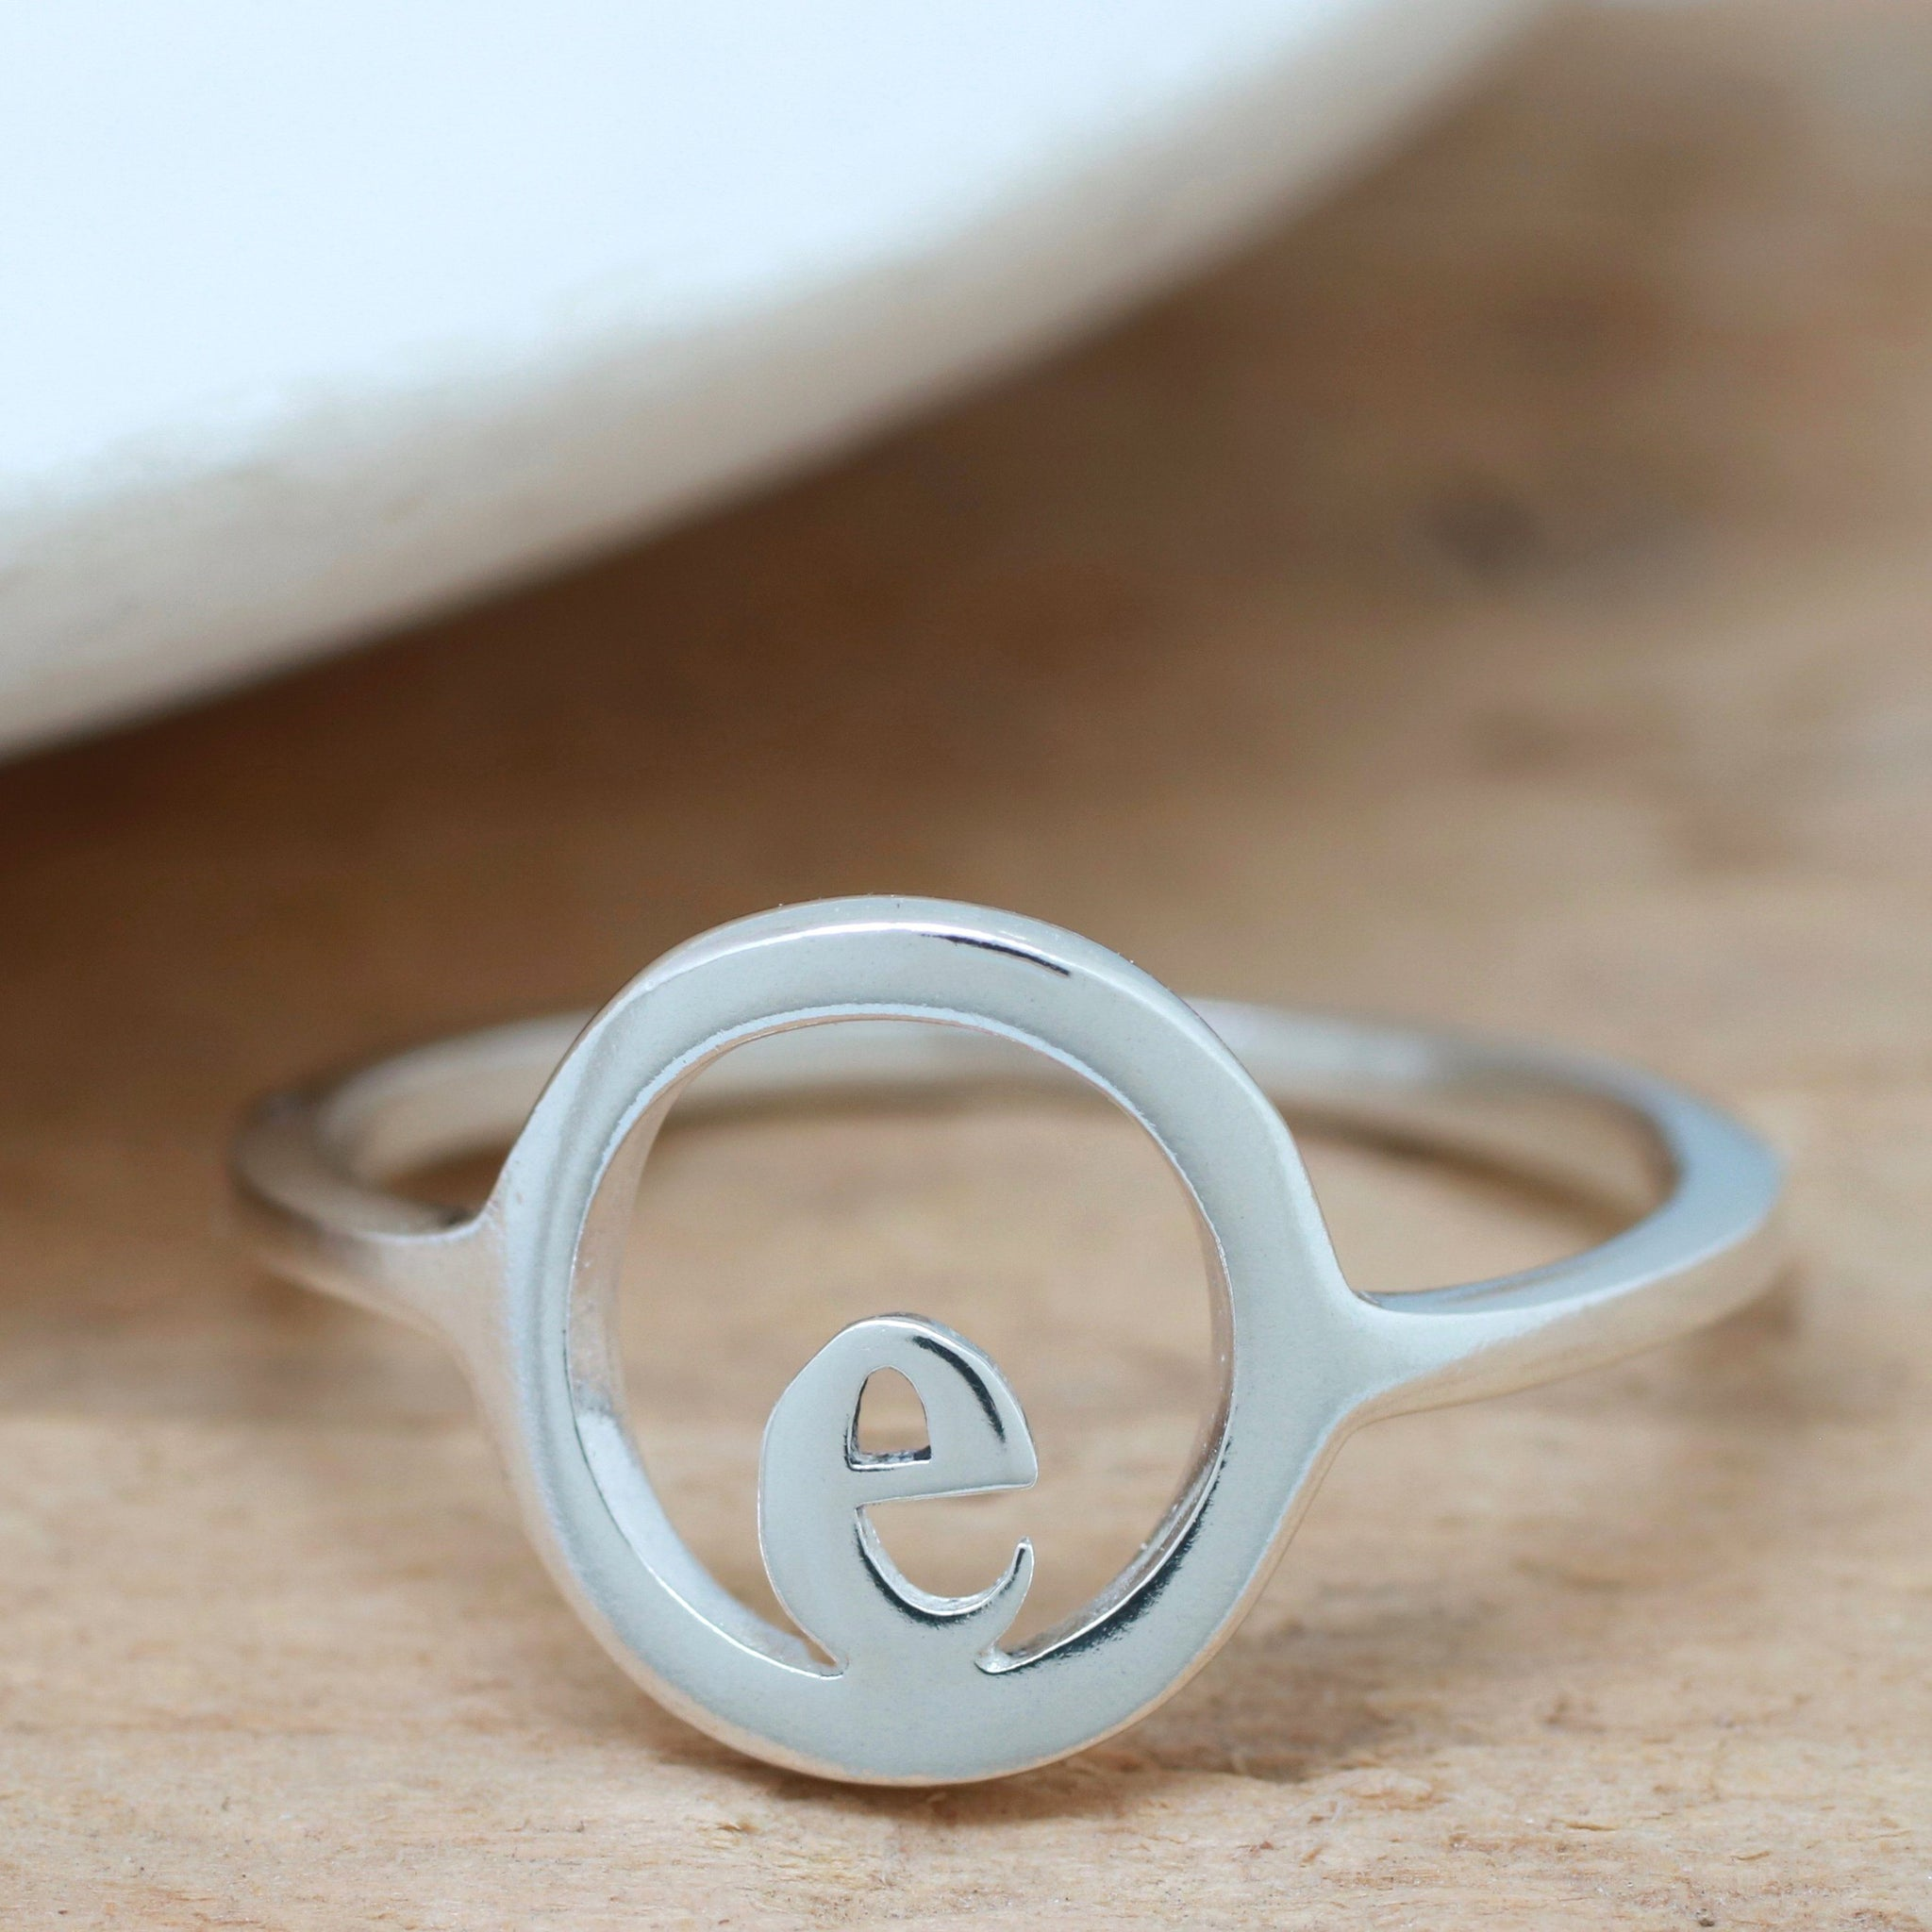 custome signet ring